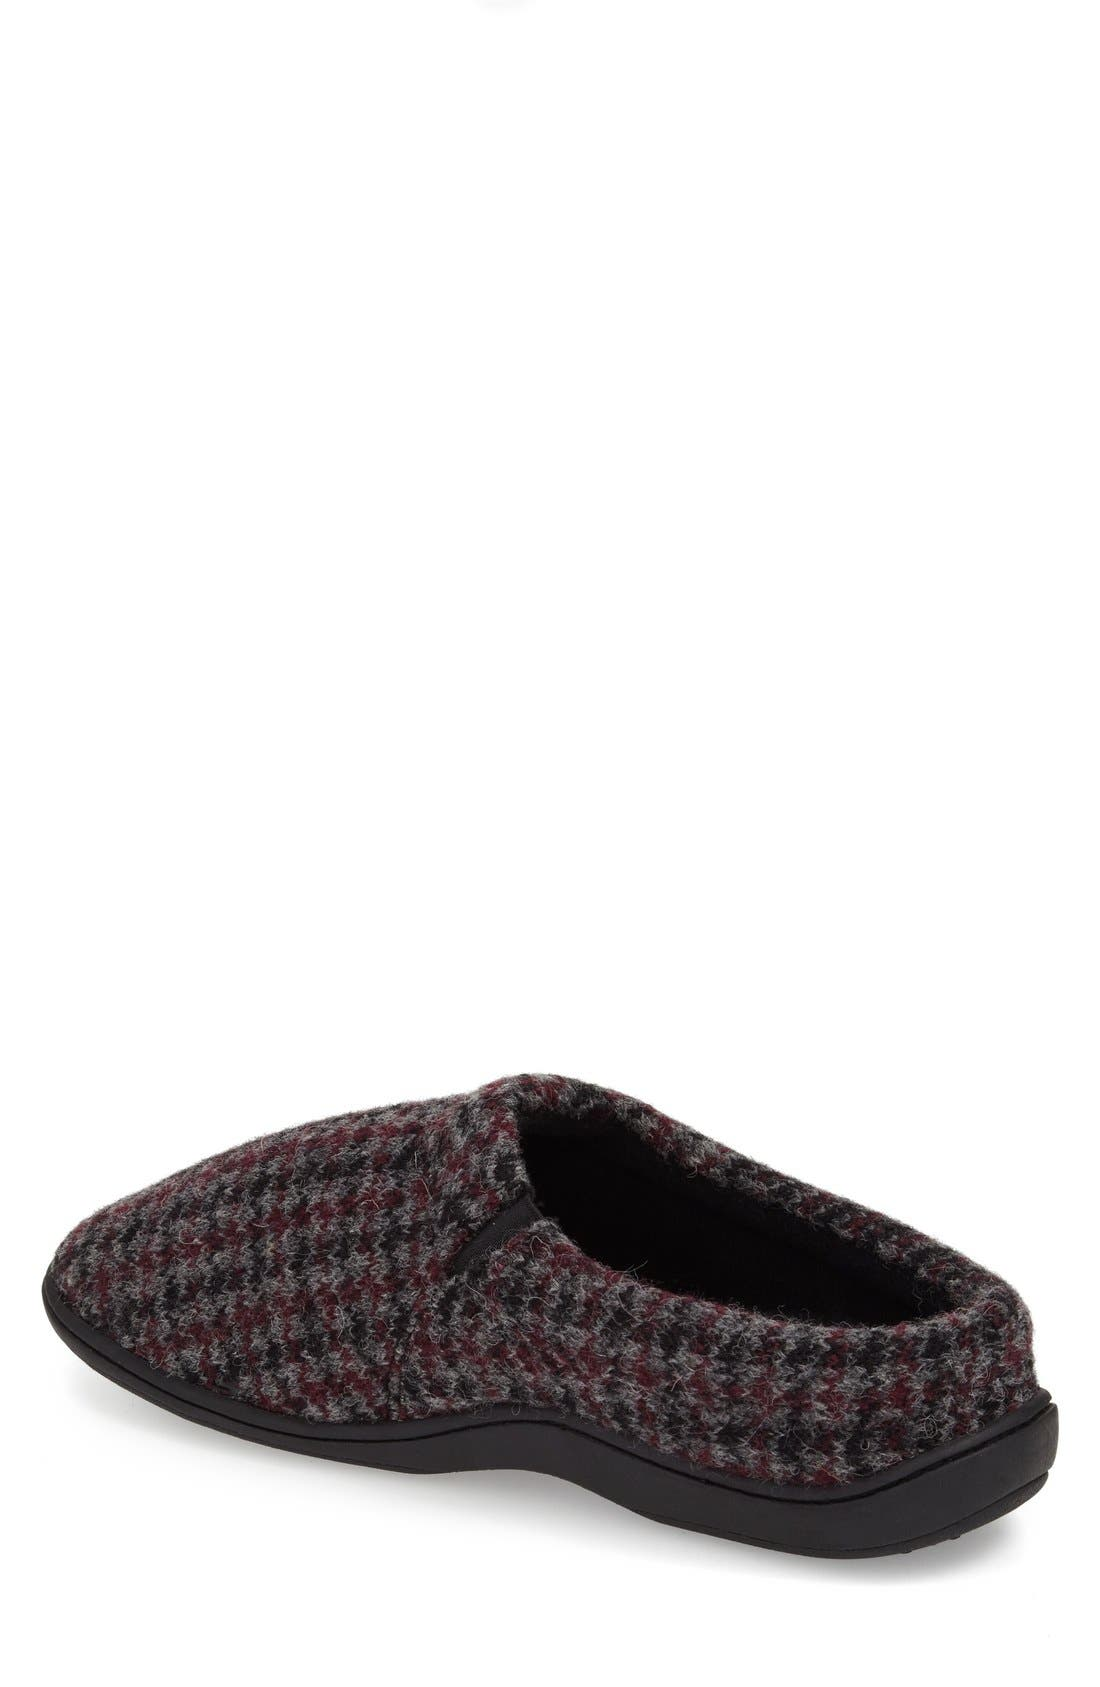 'Digby' Slipper,                             Alternate thumbnail 19, color,